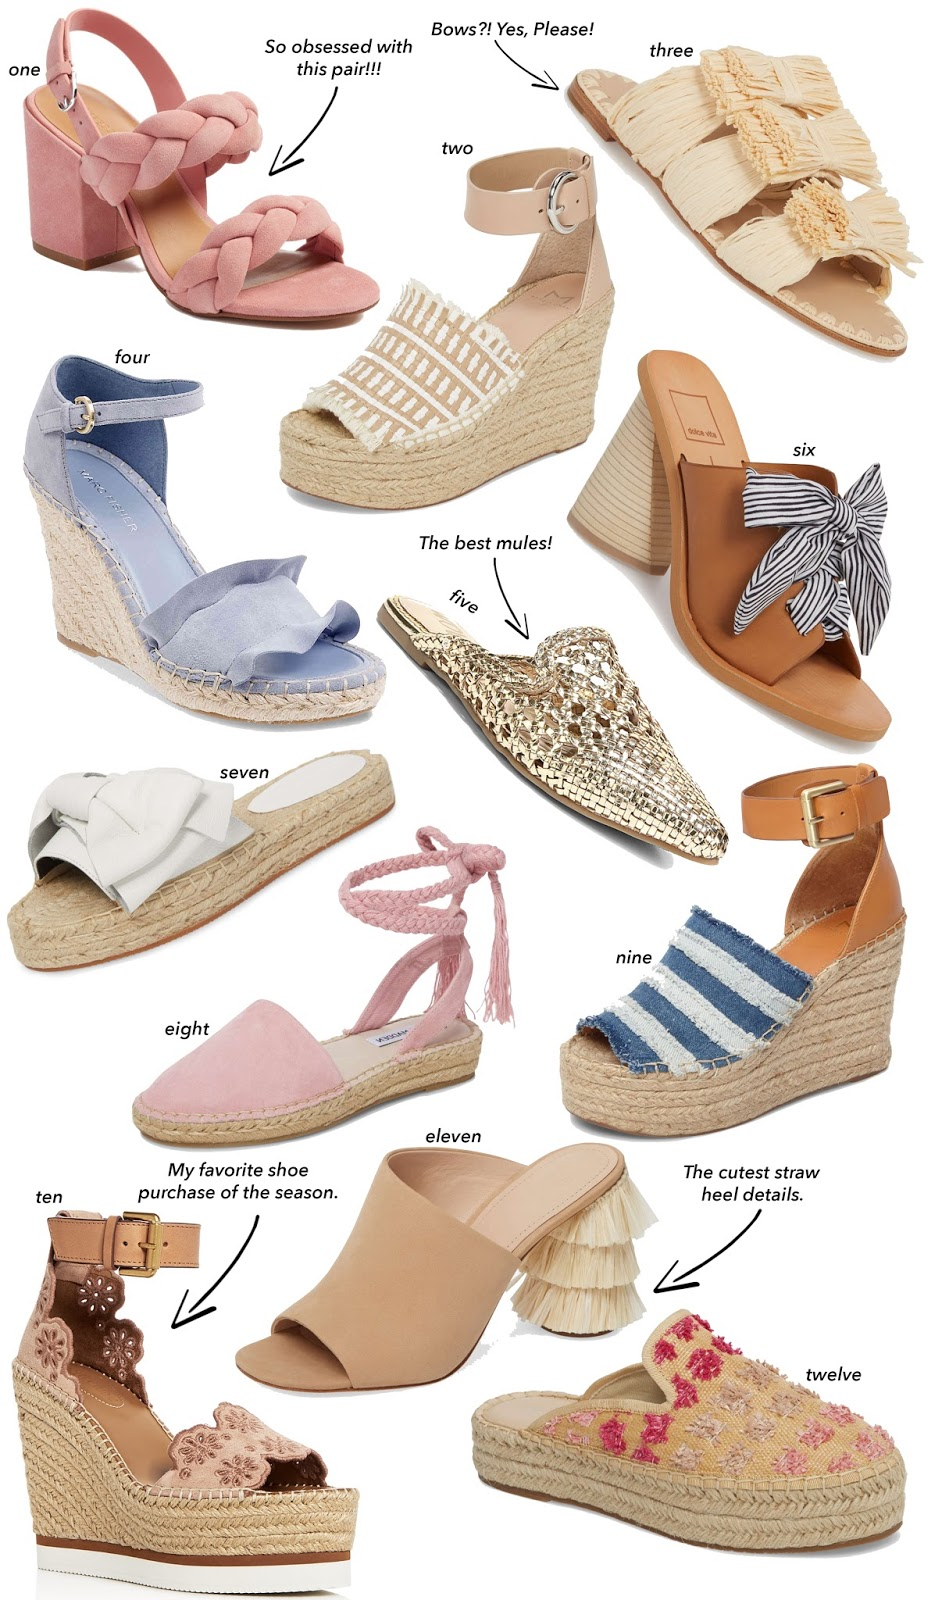 25 Shoes for Spring - Click through to Something Delightful Blog for details